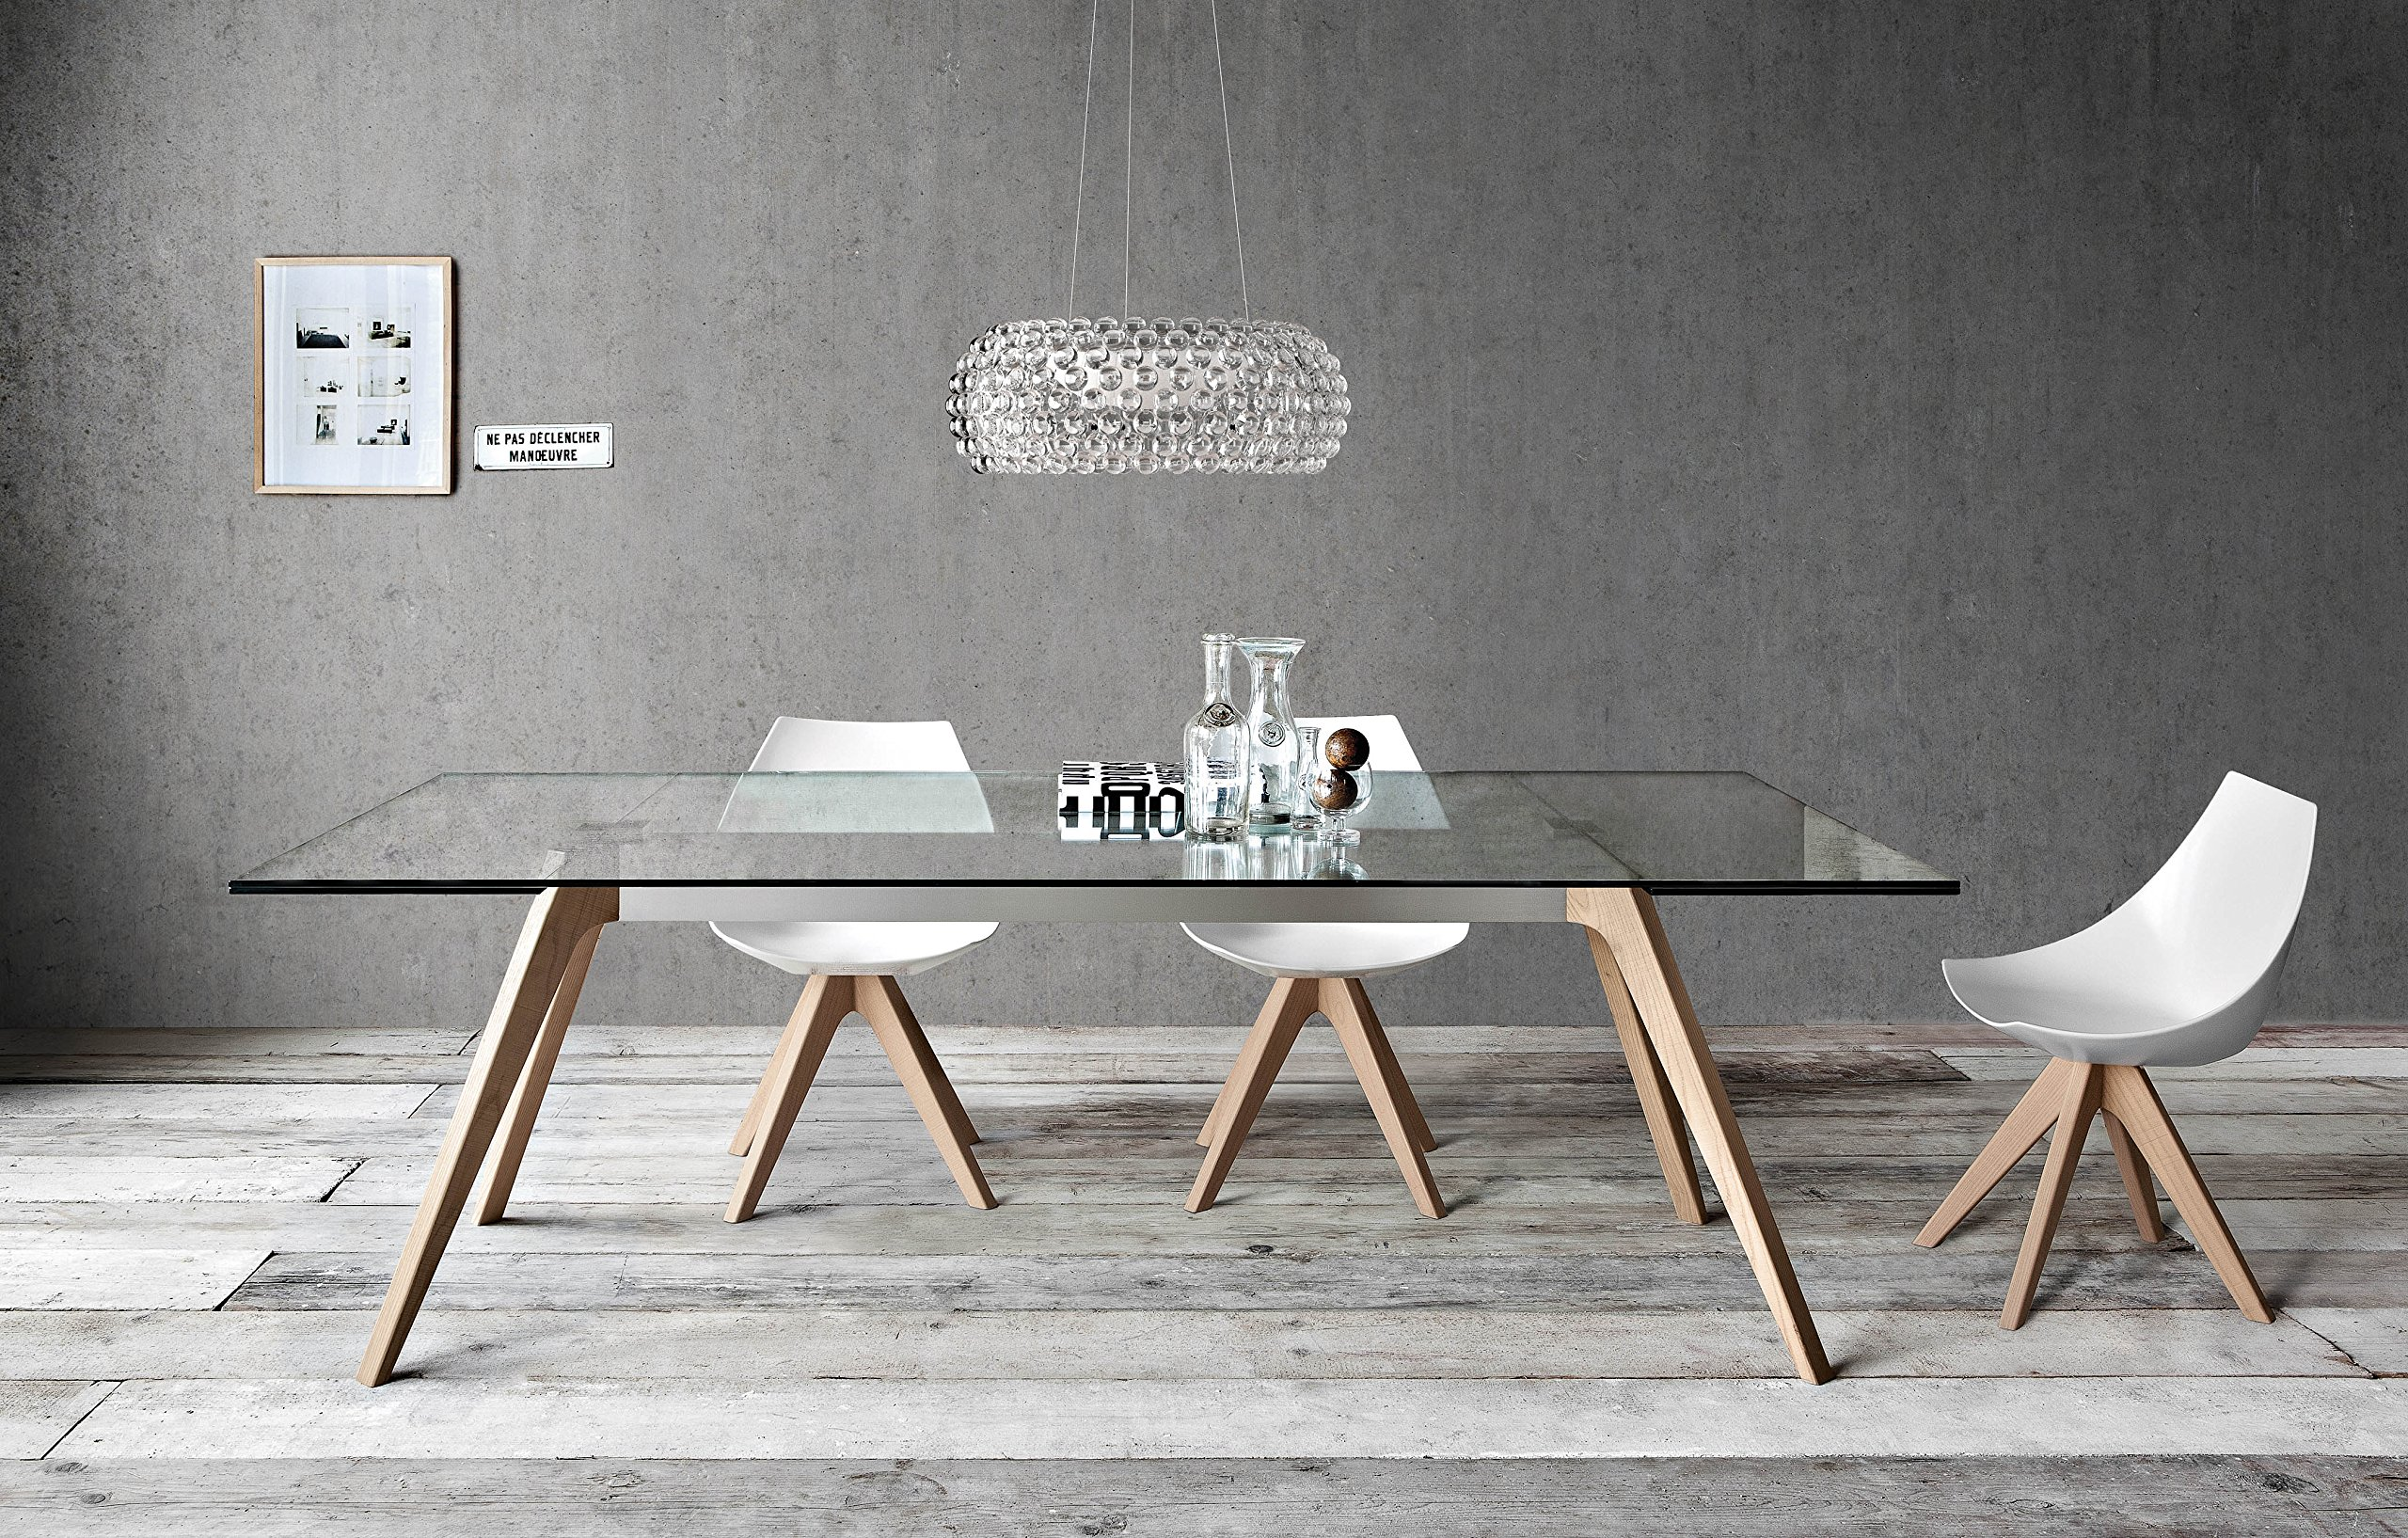 Delta + Gamma: Modern Dining Room Table + Six-chair Set - Clear glass table top. Natural oak legs. White matte lacquered seat. Natural oak legs. Extendable table. - kitchen-dining-room-furniture, kitchen-dining-room, dining-sets - A1R9QXHLq8L -